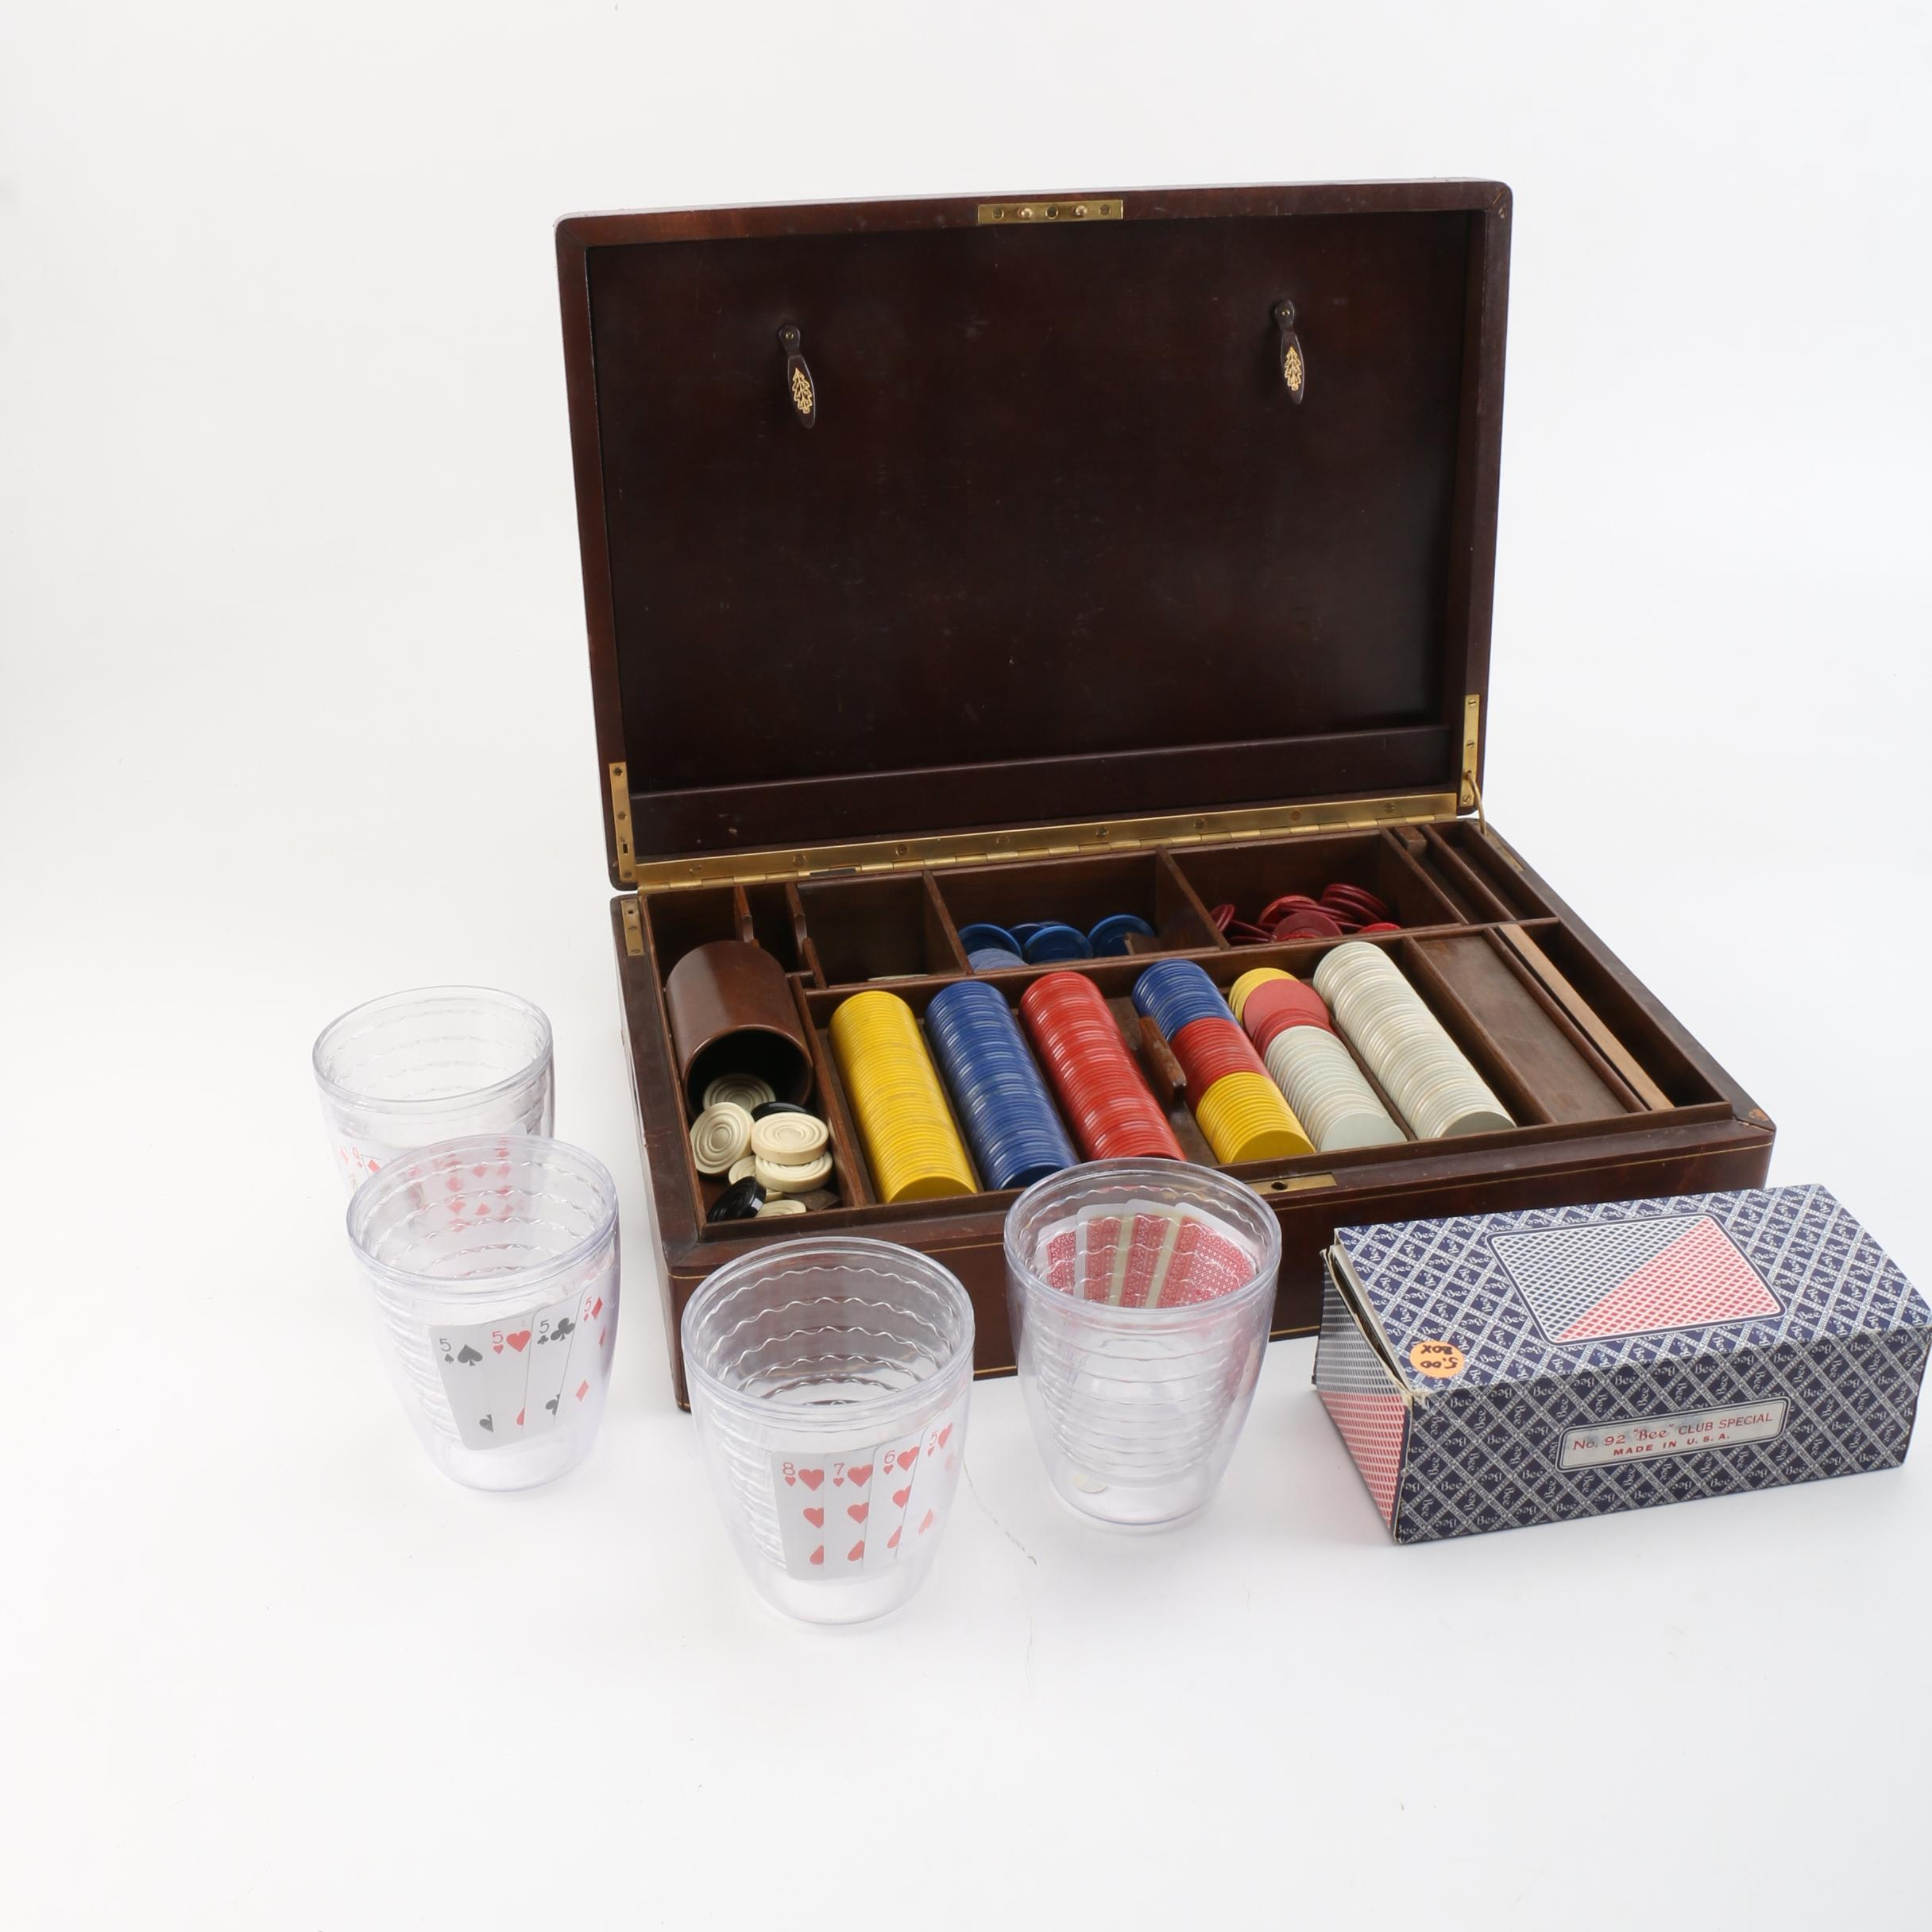 Vintage Playing Cards with Poker Chips and Cups